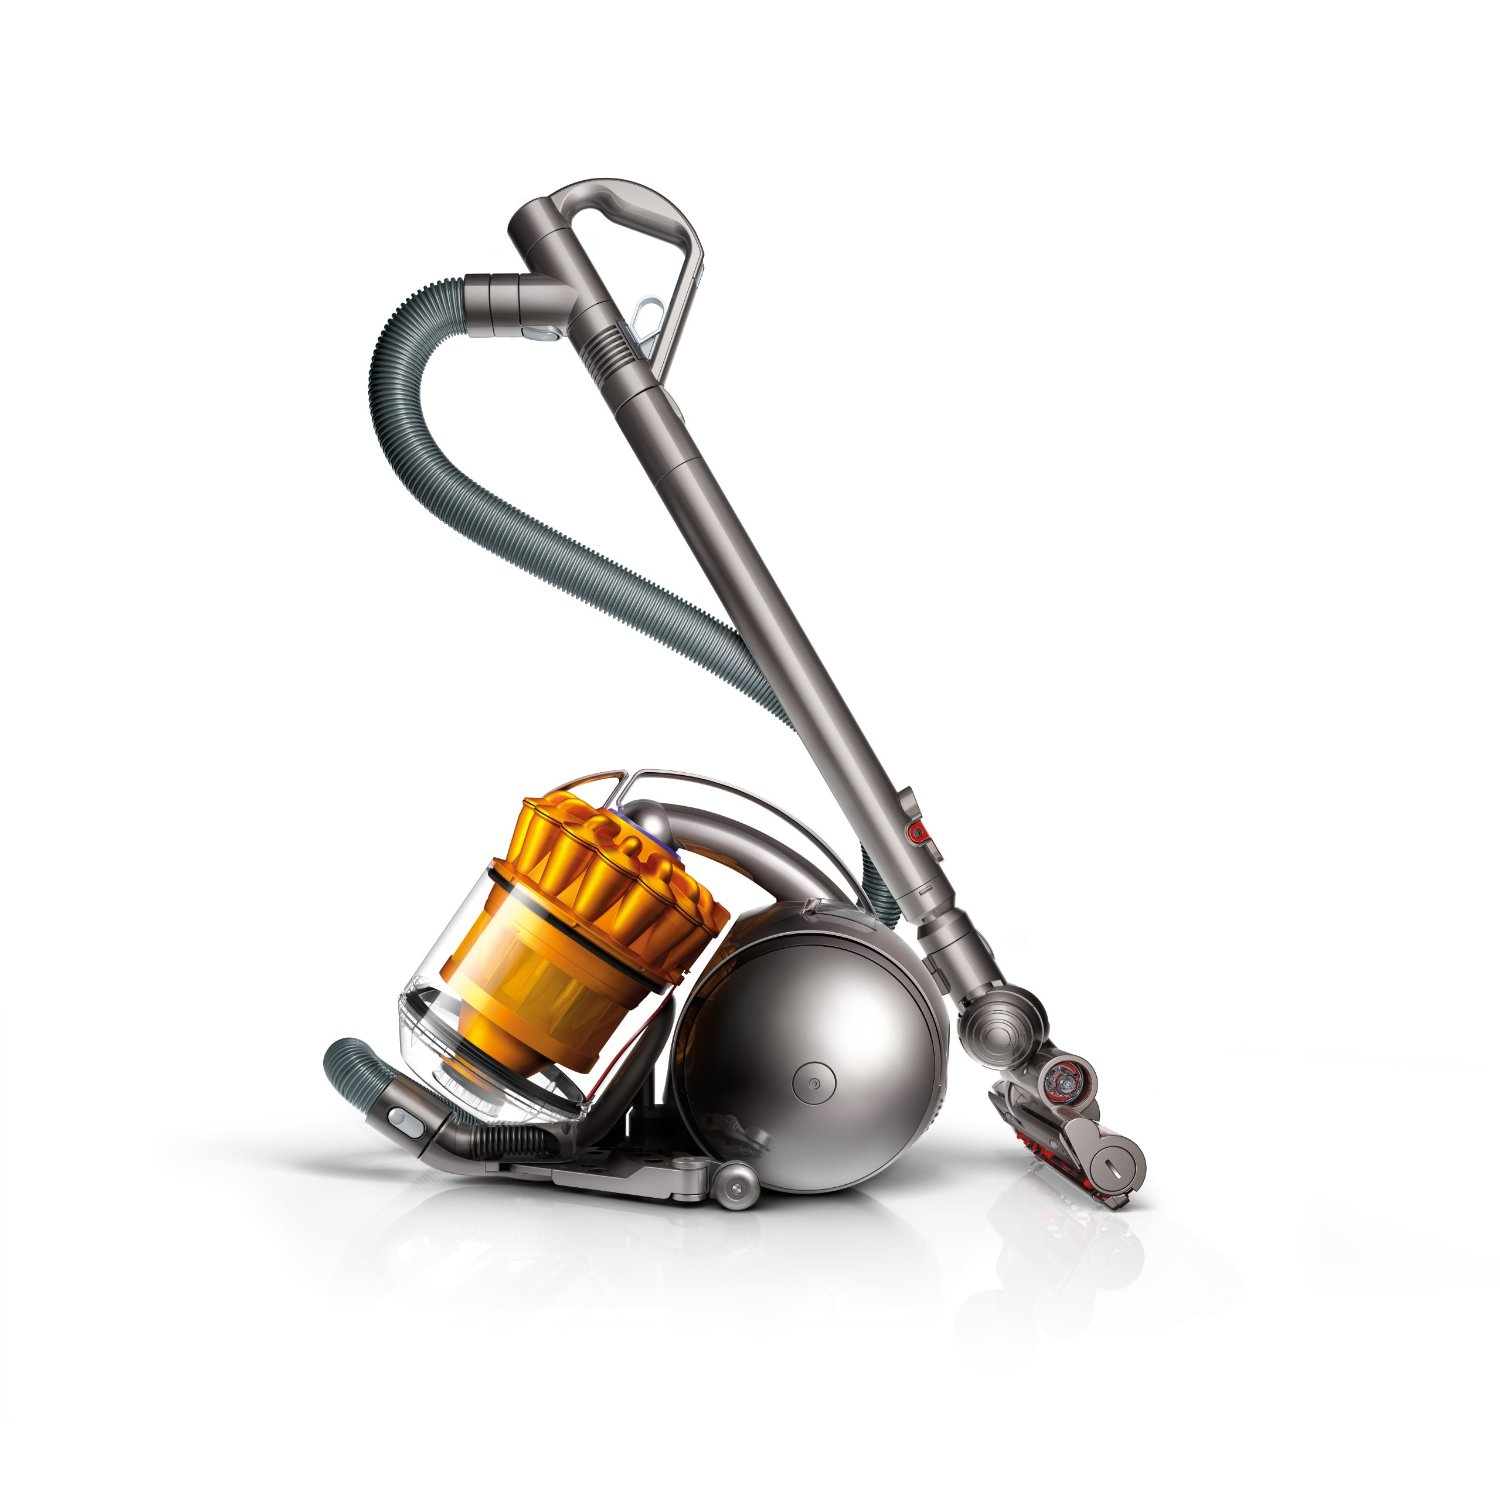 Easy To Find Parts Guide For Dyson Vacuum Cleaners